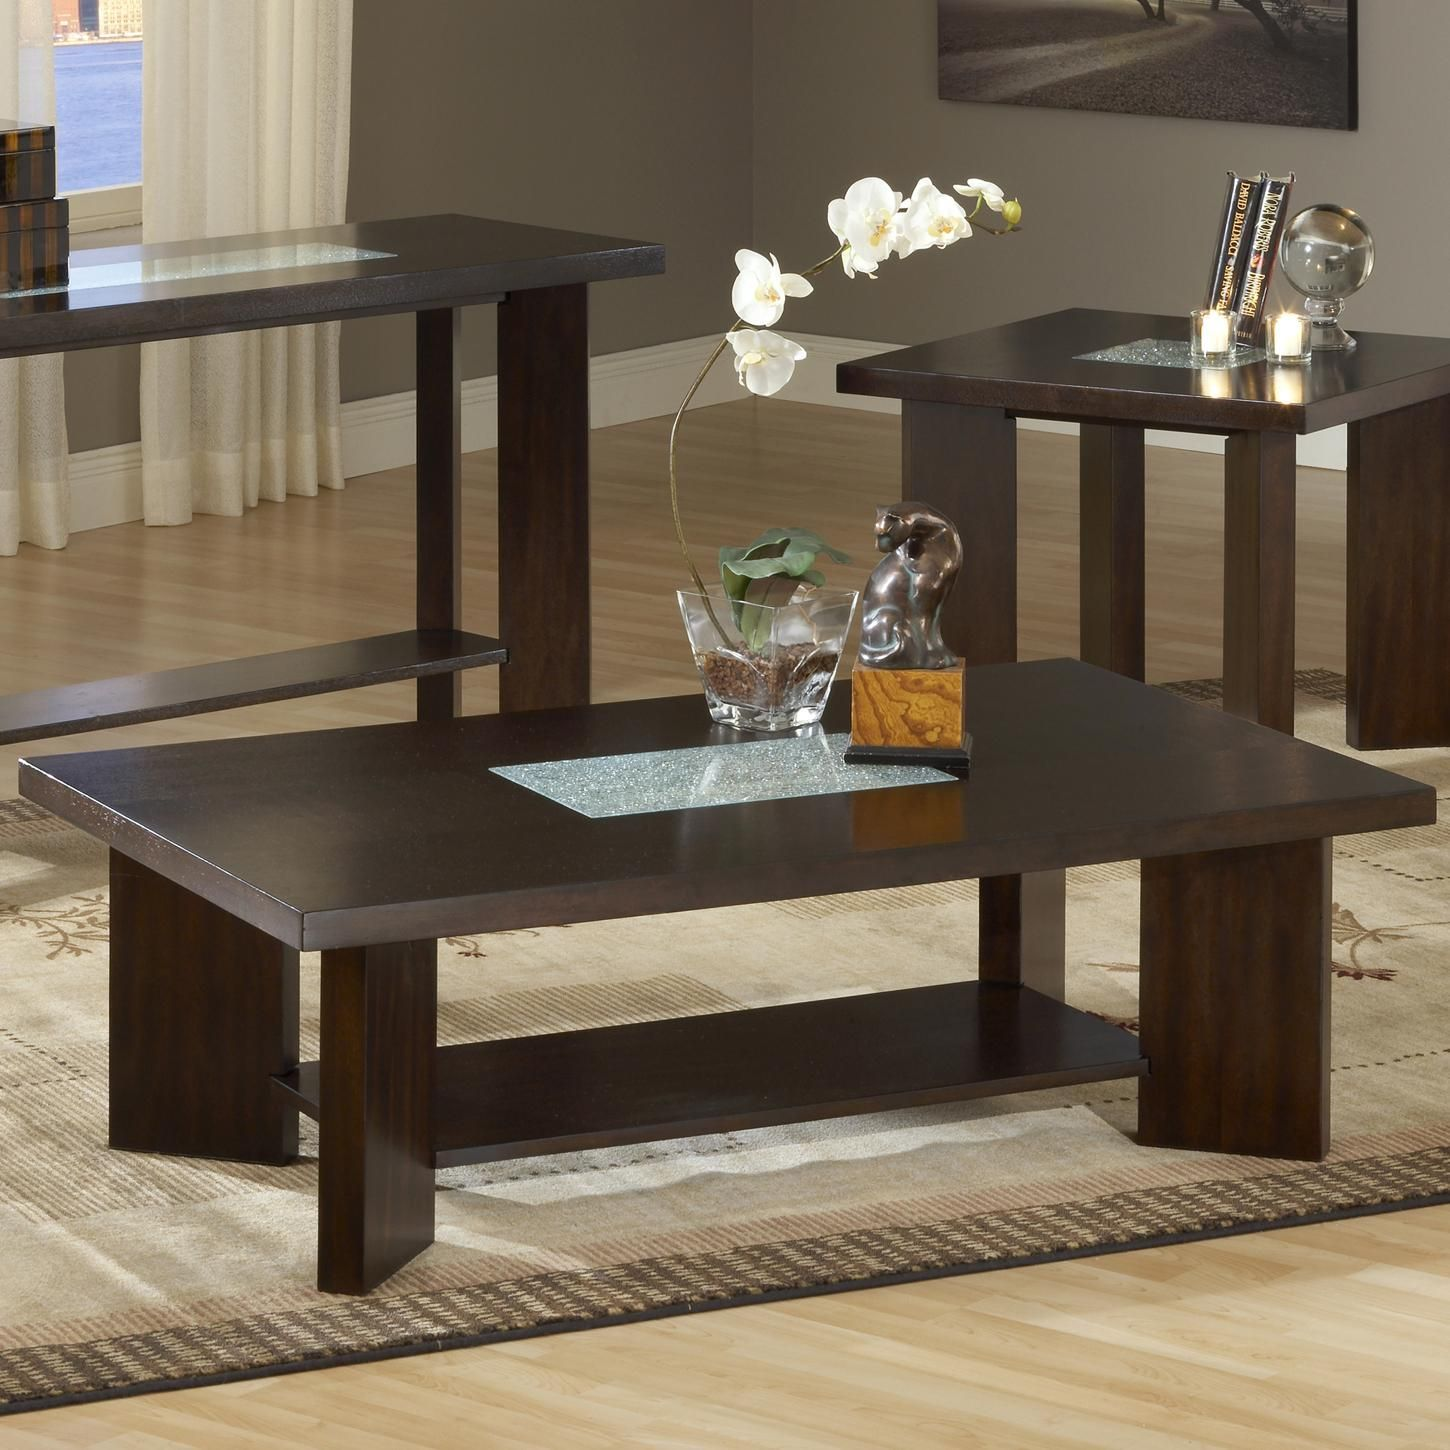 9 High Quality Table With Cracked Glass Inserts In The Room Design At Pottery Barn Our Glassware Collection Features Room Design Design Wooden Dining Tables [ 1450 x 1450 Pixel ]